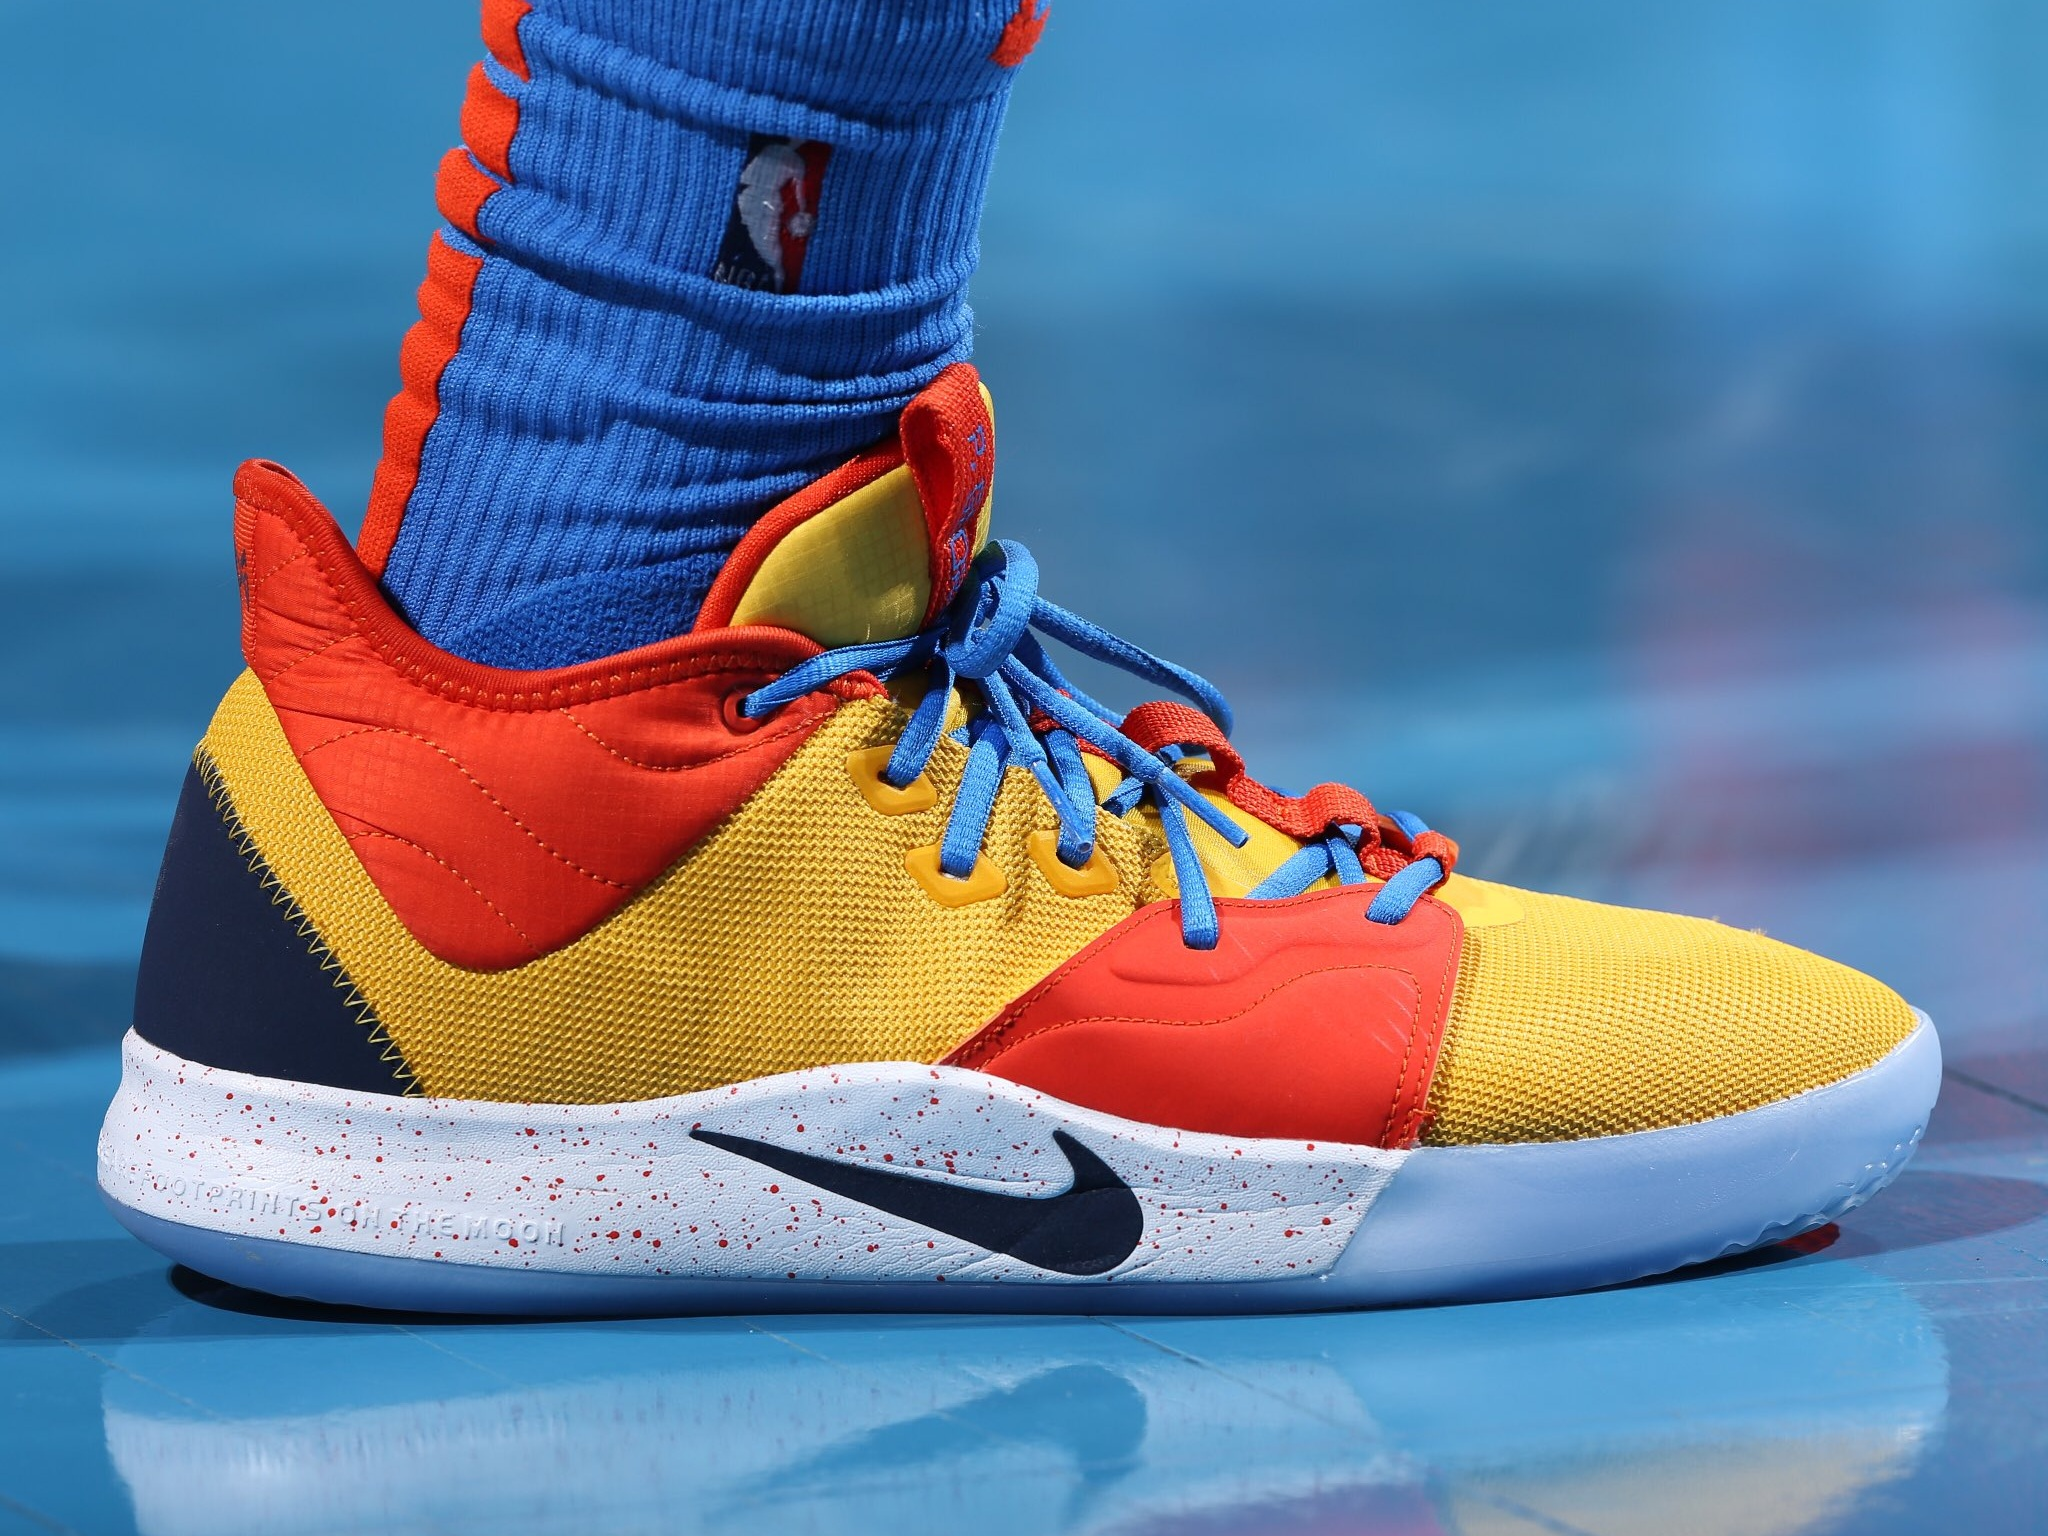 Paul George in the mustard and ketchup Nike PG 3 - Oklahoma City Thunder vs. Dallas Mavericks | March 31, 201927 Points2 Assists11 Rebounds2 Steals8-20 Shooting